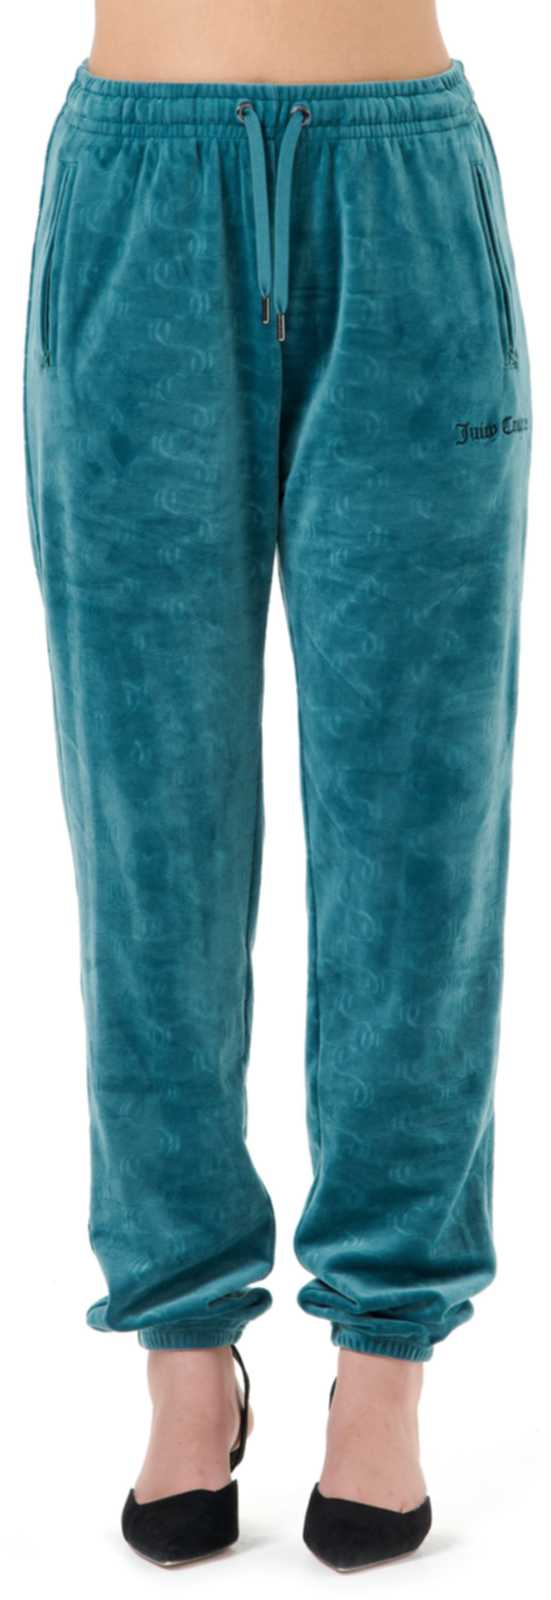 Juicy Couture Lilian Embossed Velour Bottoms	Sea Moss